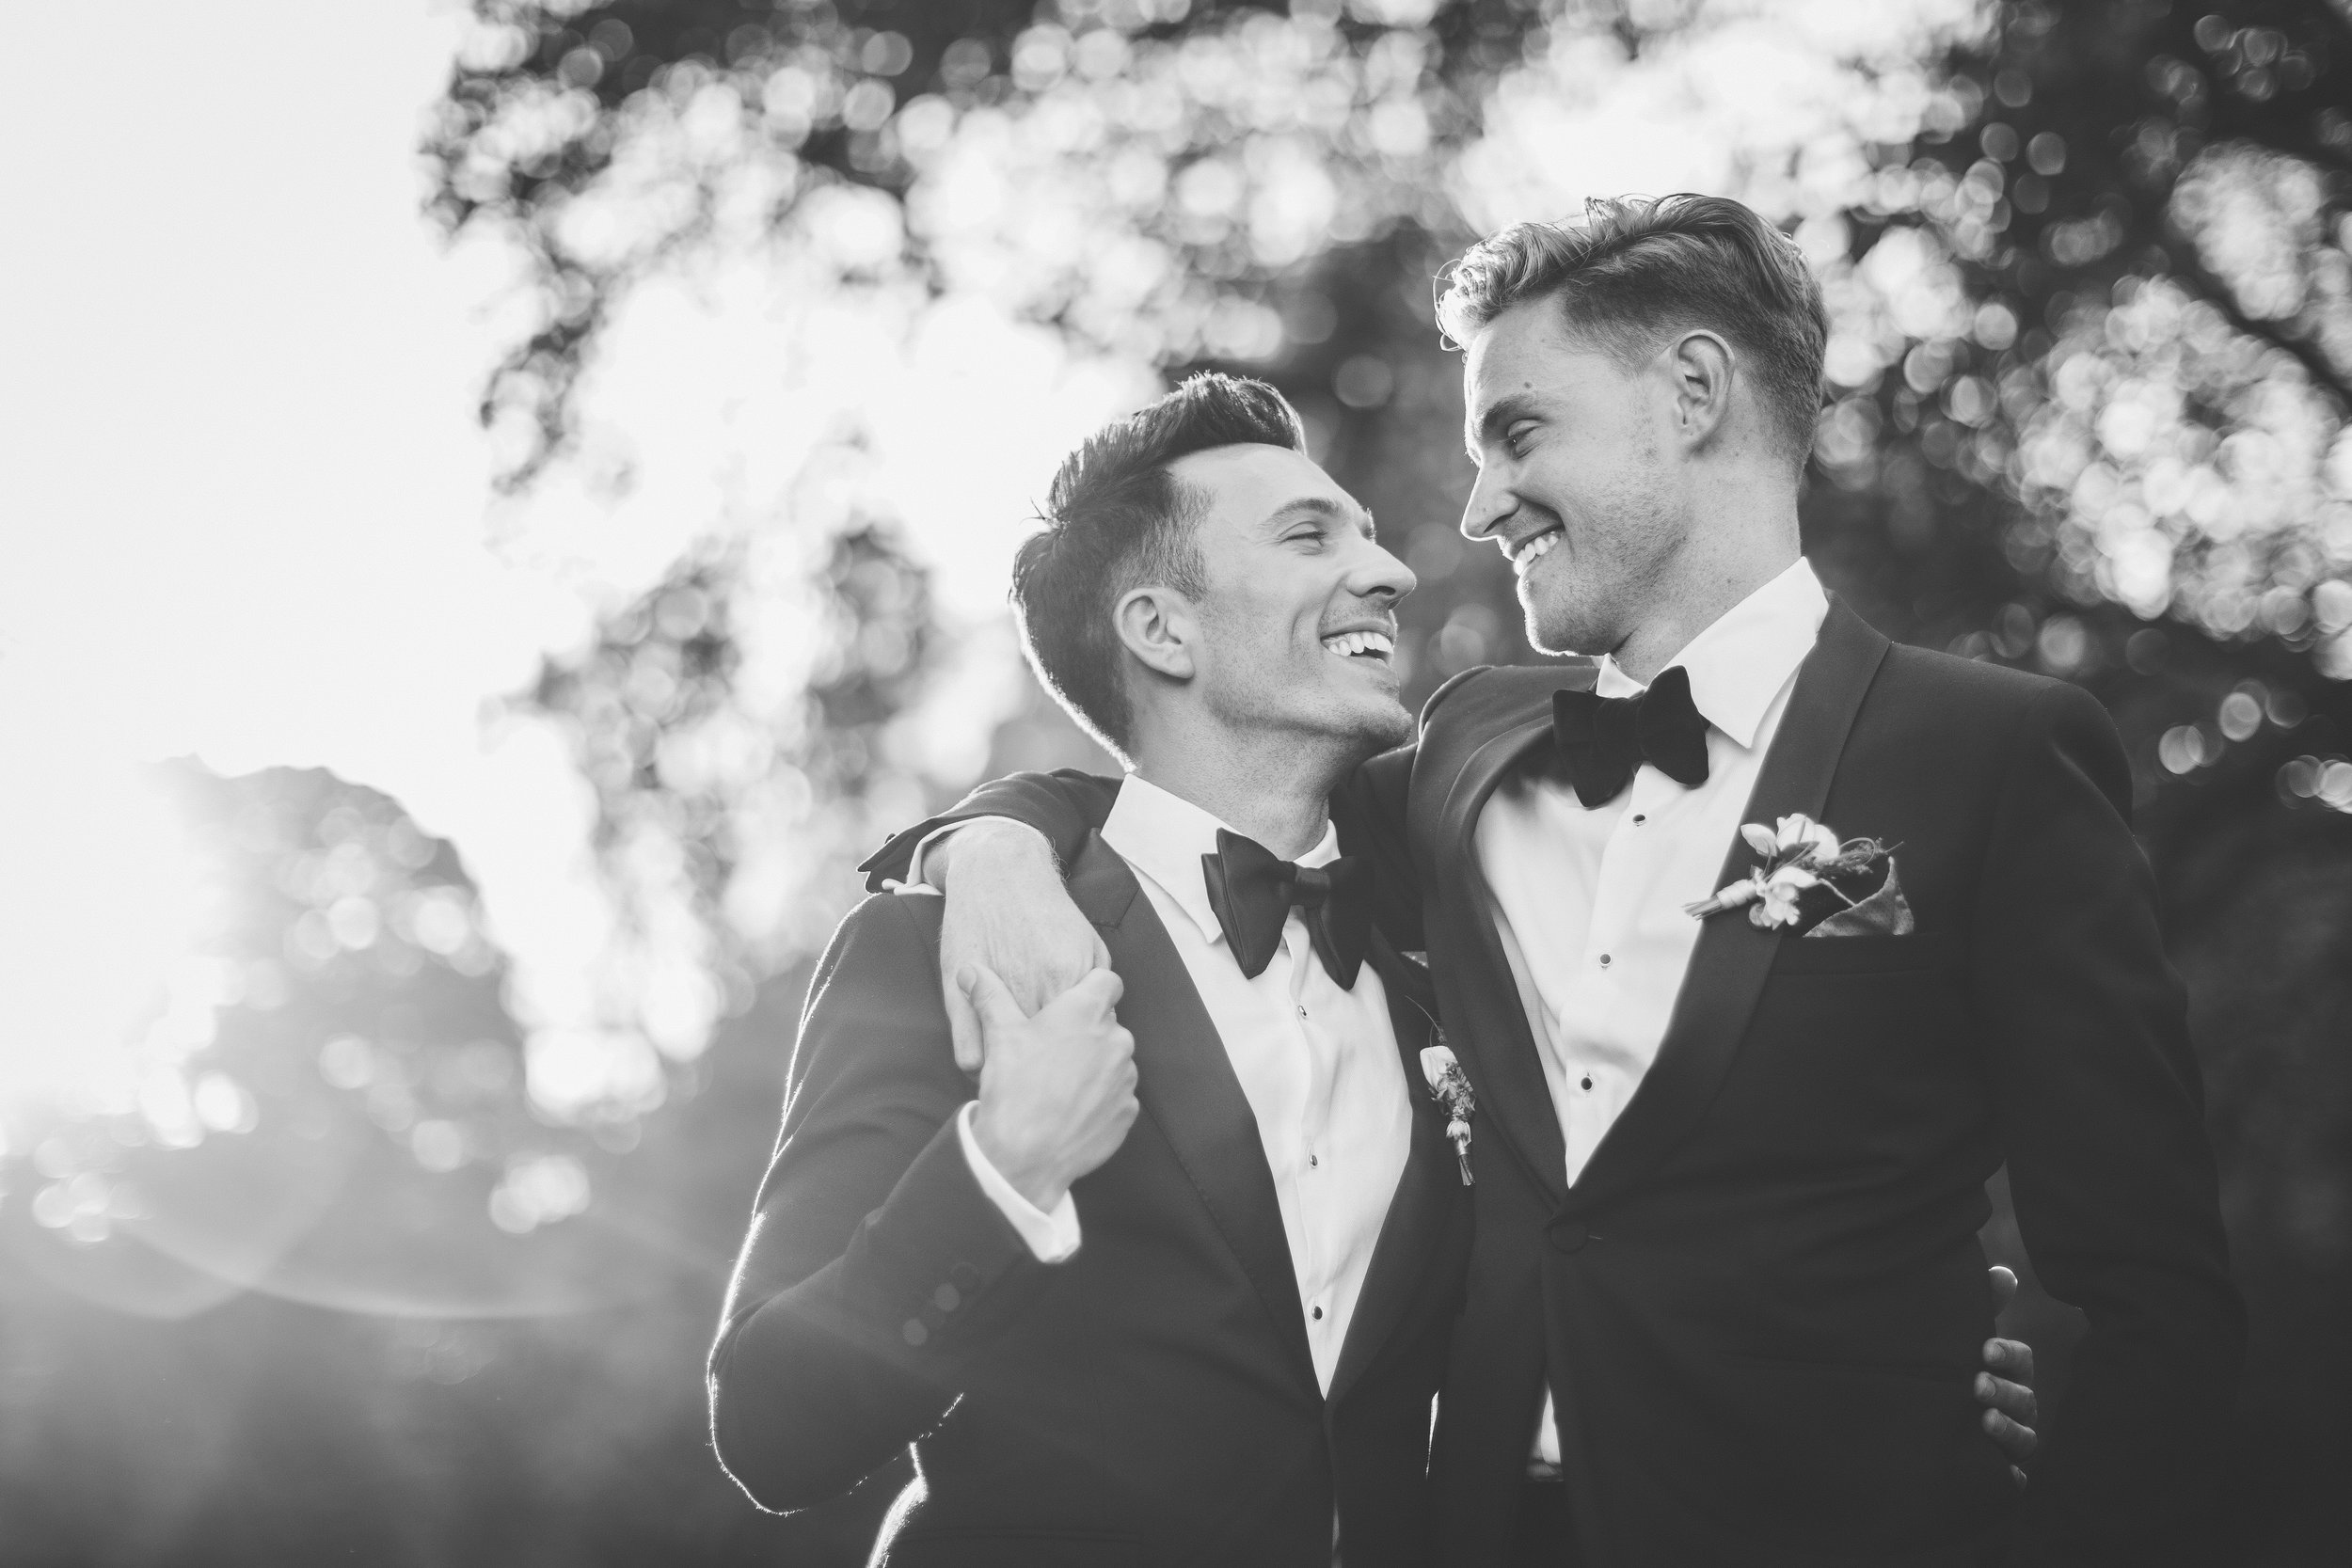 mr-theodore_same-sex-wedding31.jpg